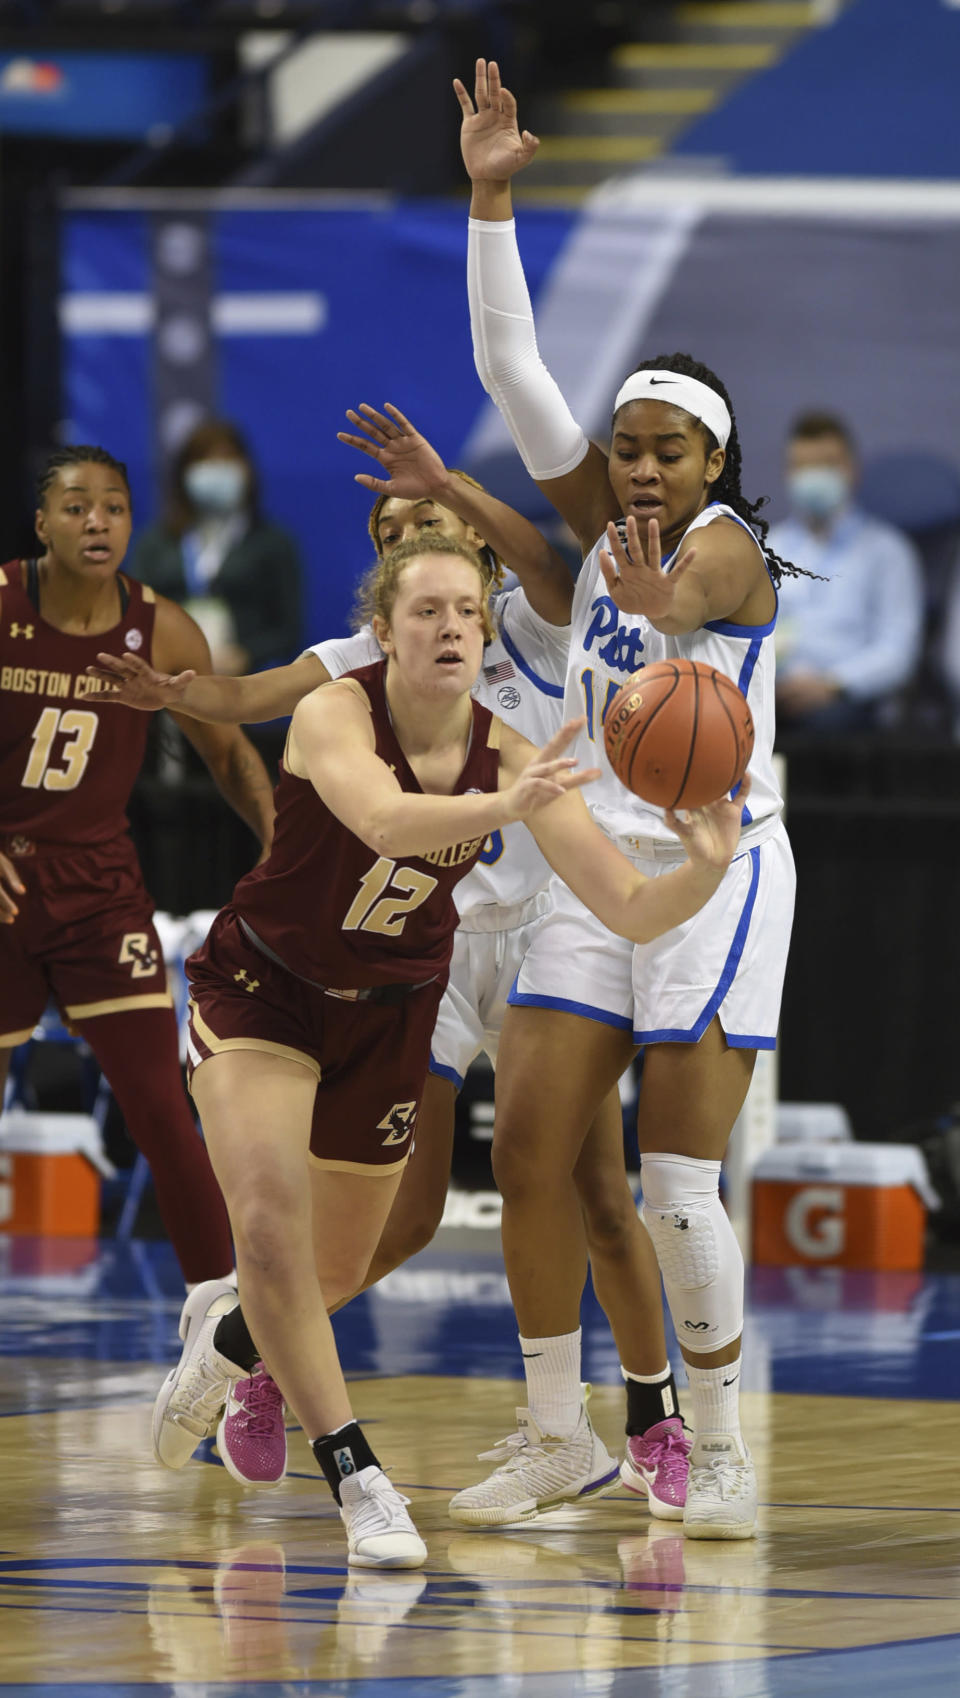 Boston College's Ally VanTimmeren, left, looks for help as she is guarded by Pittsburgh's Cynthia Ezeja in the opening round of the Atlantic Coast Conference Tournament, Wednesday, March 3, 2021, at the Greensboro Coliseum in Greensboro, N.C. (Walt Unks/The Winston-Salem Journal via AP)